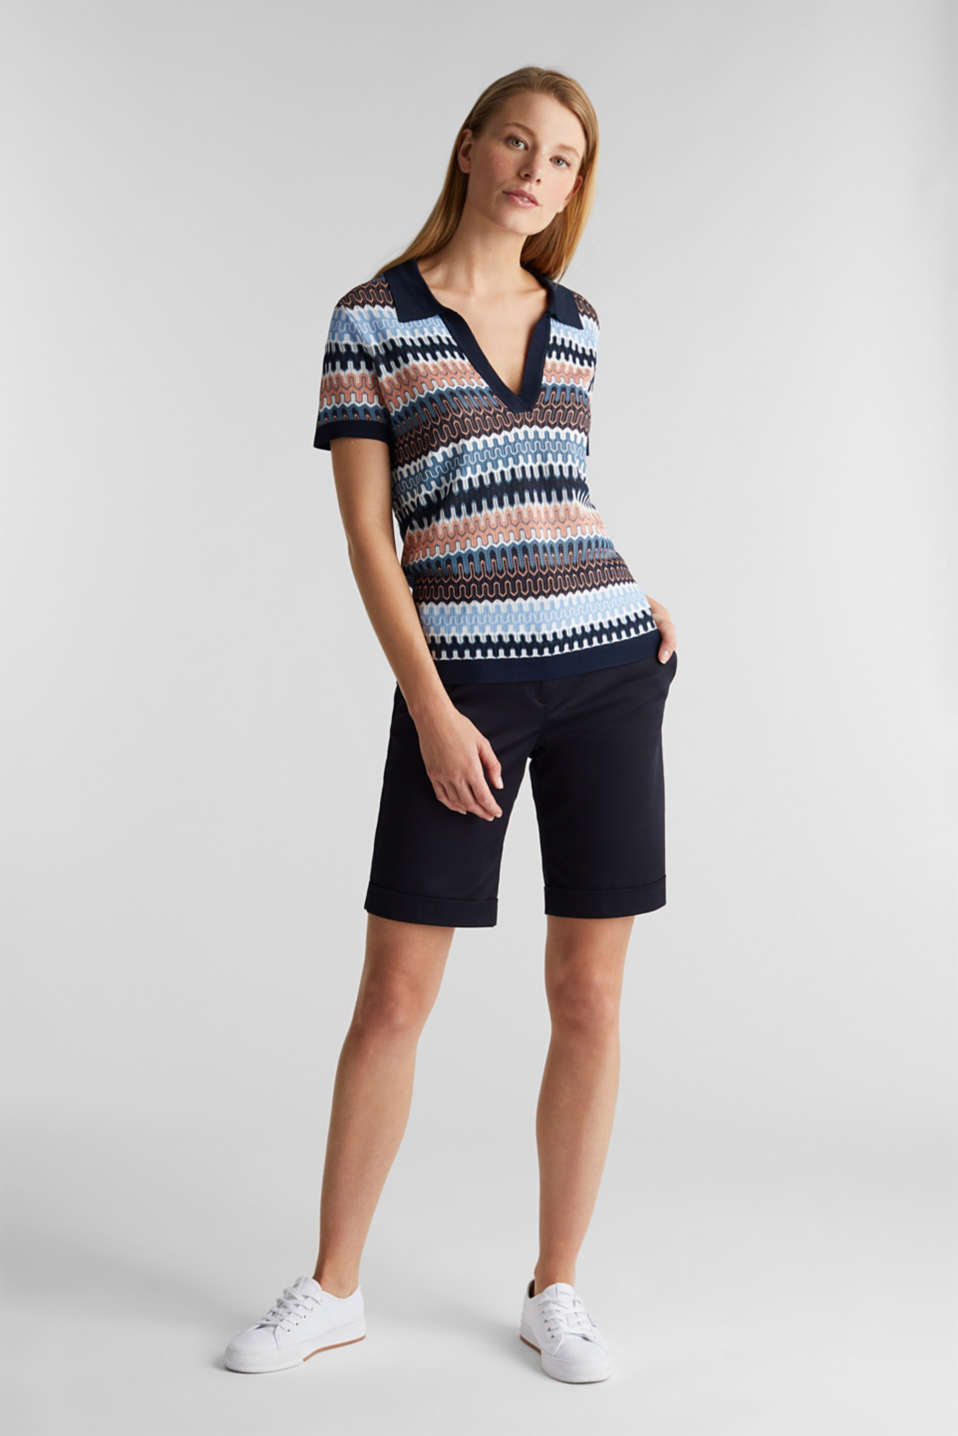 Short-sleeved jumper with a jacquard pattern, NAVY, detail image number 1